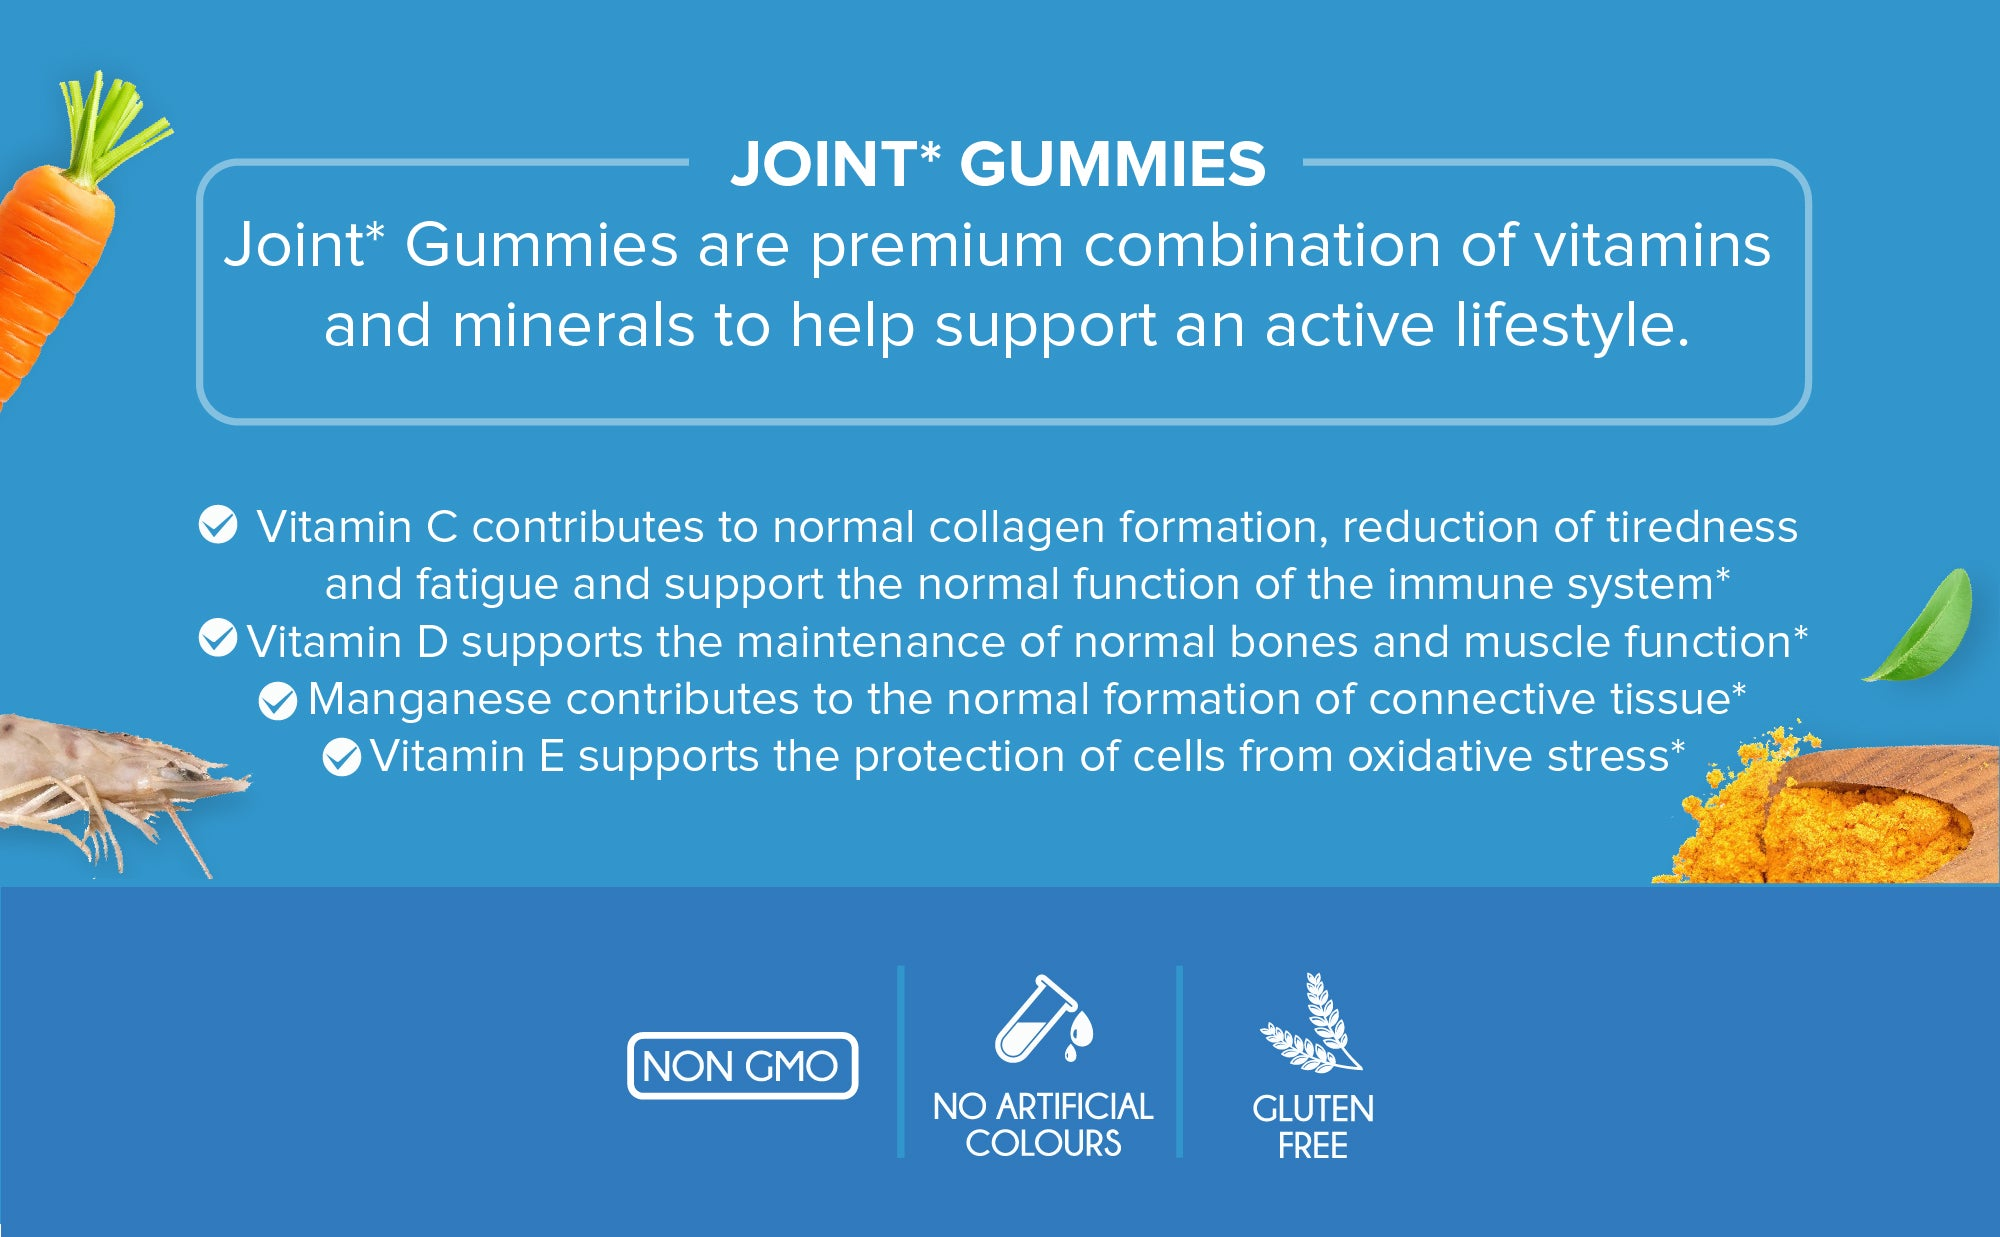 glucosamine, joint gummies, manganese, vitamin c, turmeric, joint care, joint supplement